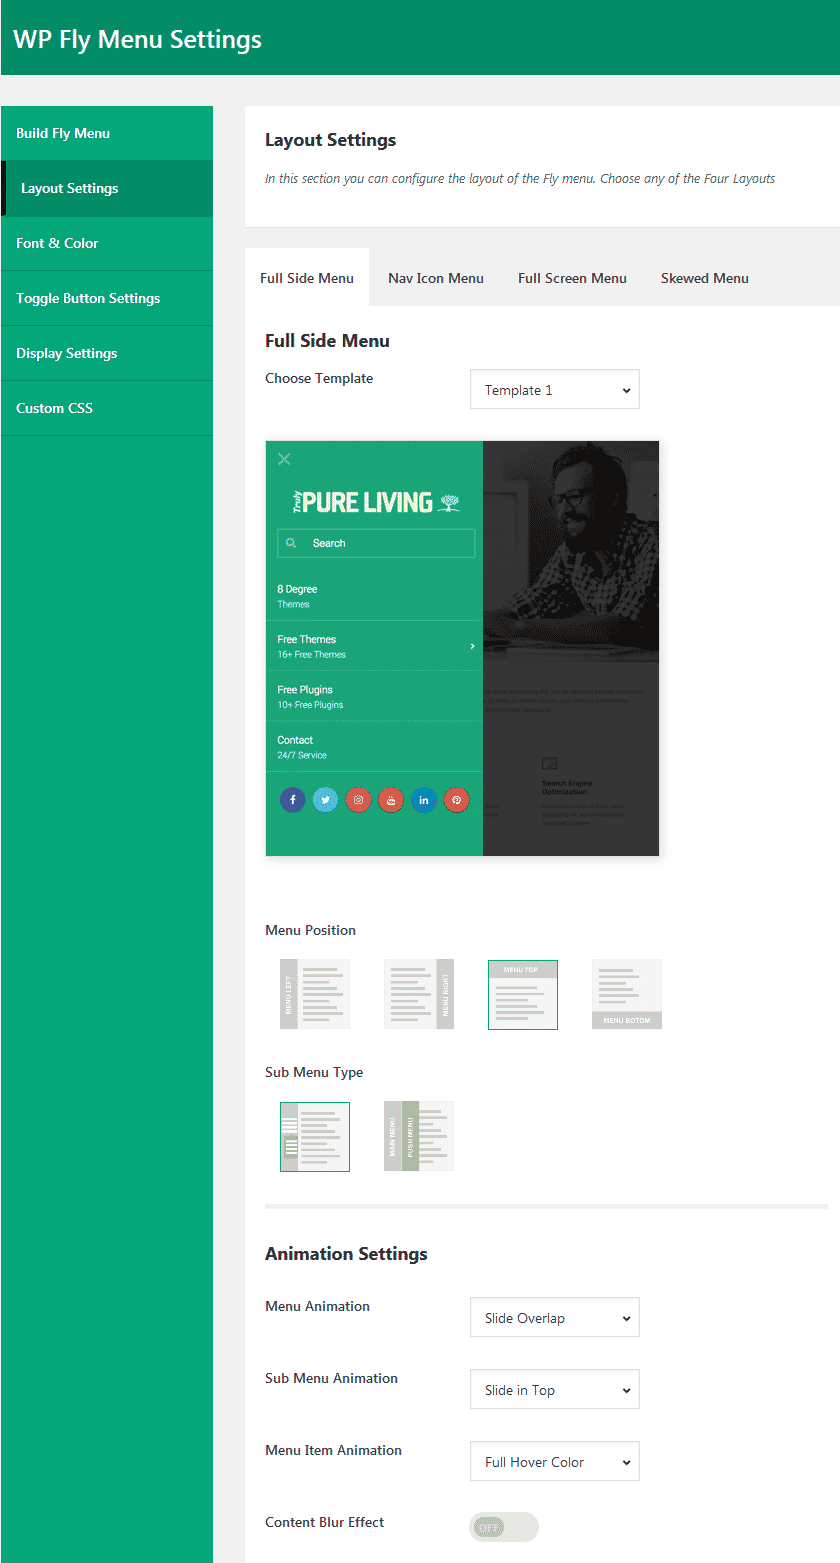 layout settings - How to add Off-Canvas Navigation Menu on WordPress website? (Step By Step Guide)